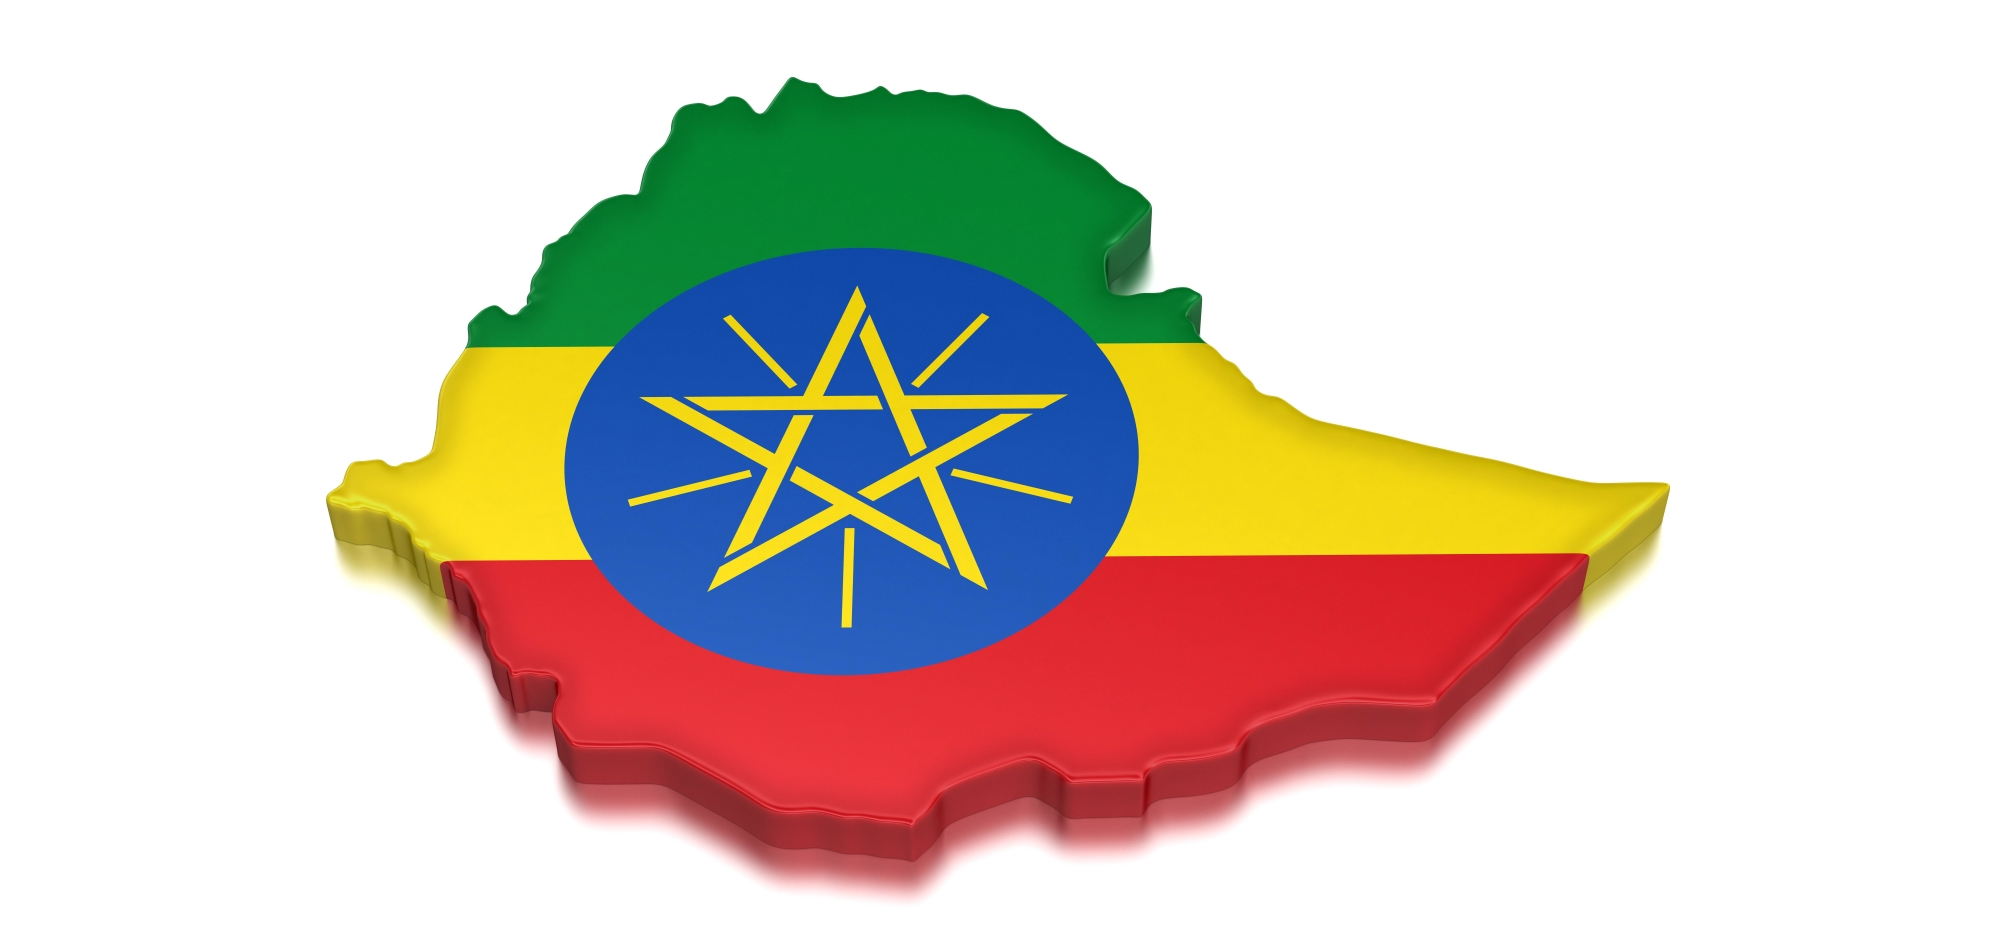 The Original Sin of Ethiopian Federalism